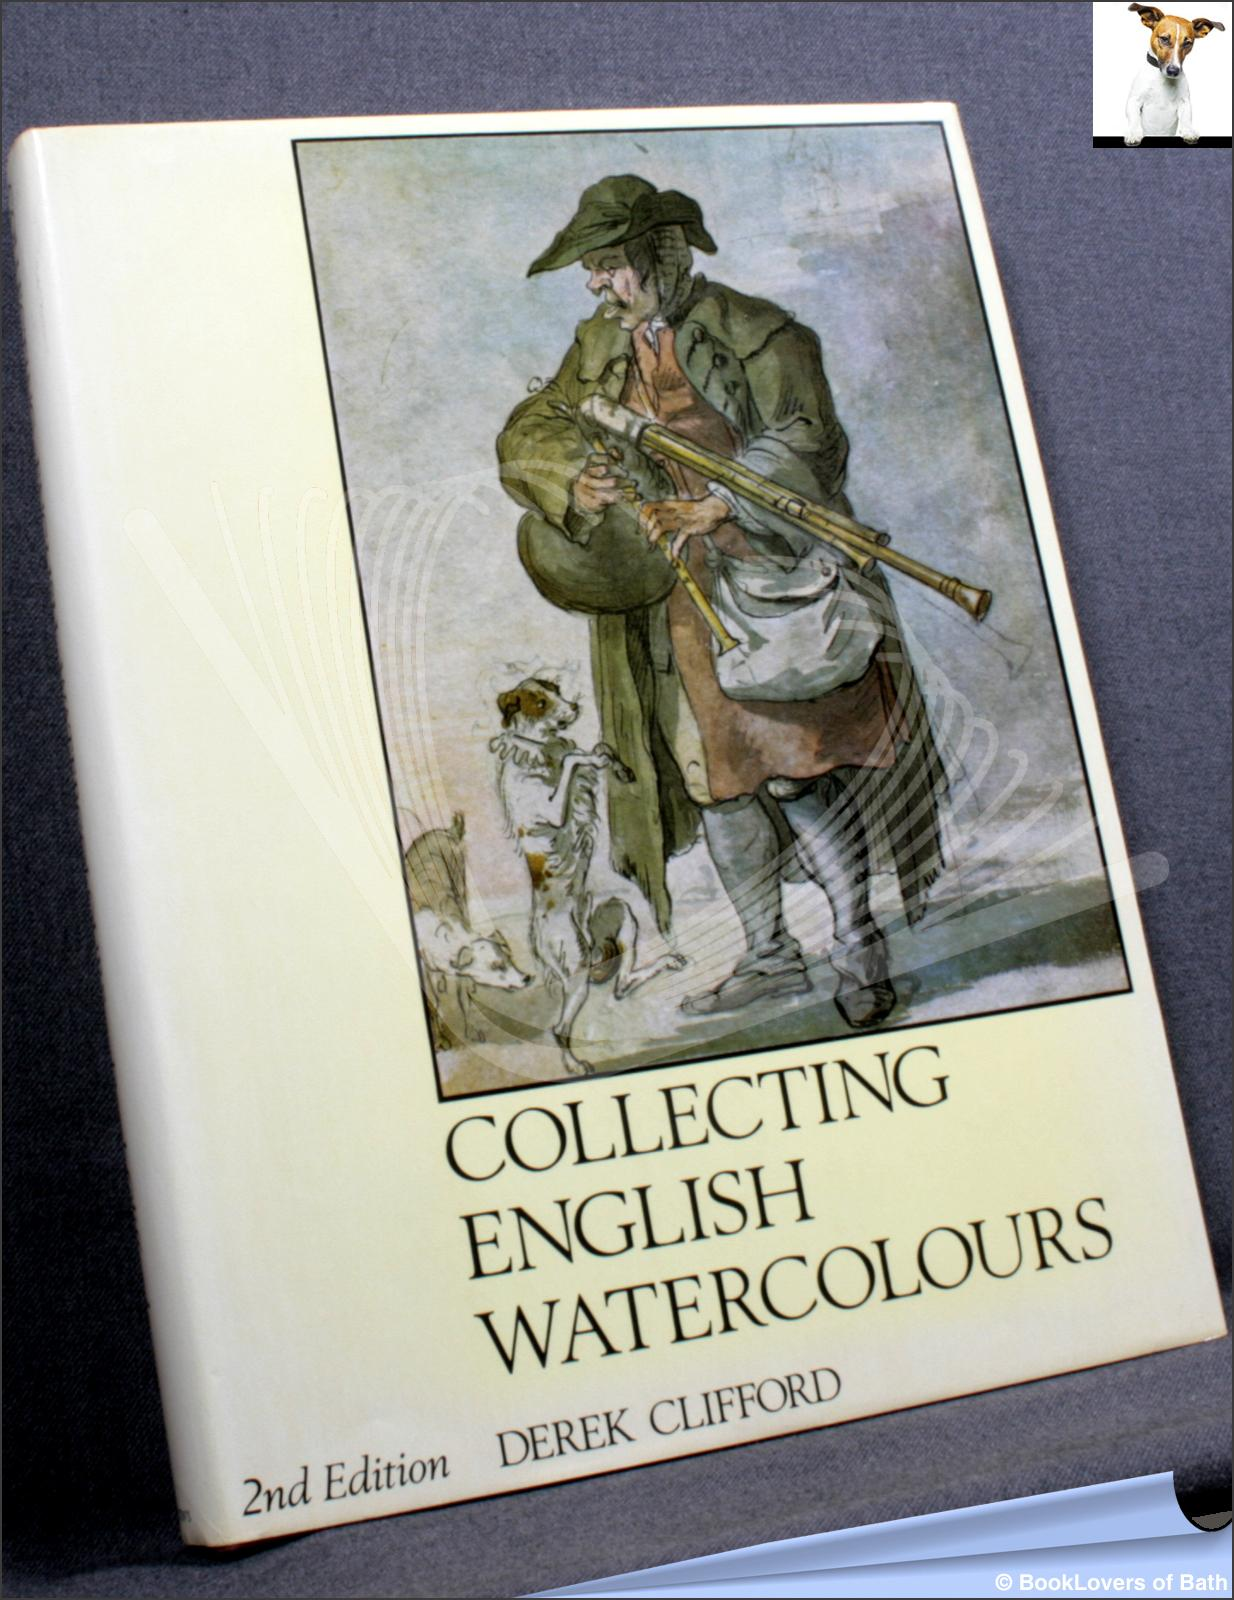 Collecting English Watercolours - Derek Clifford